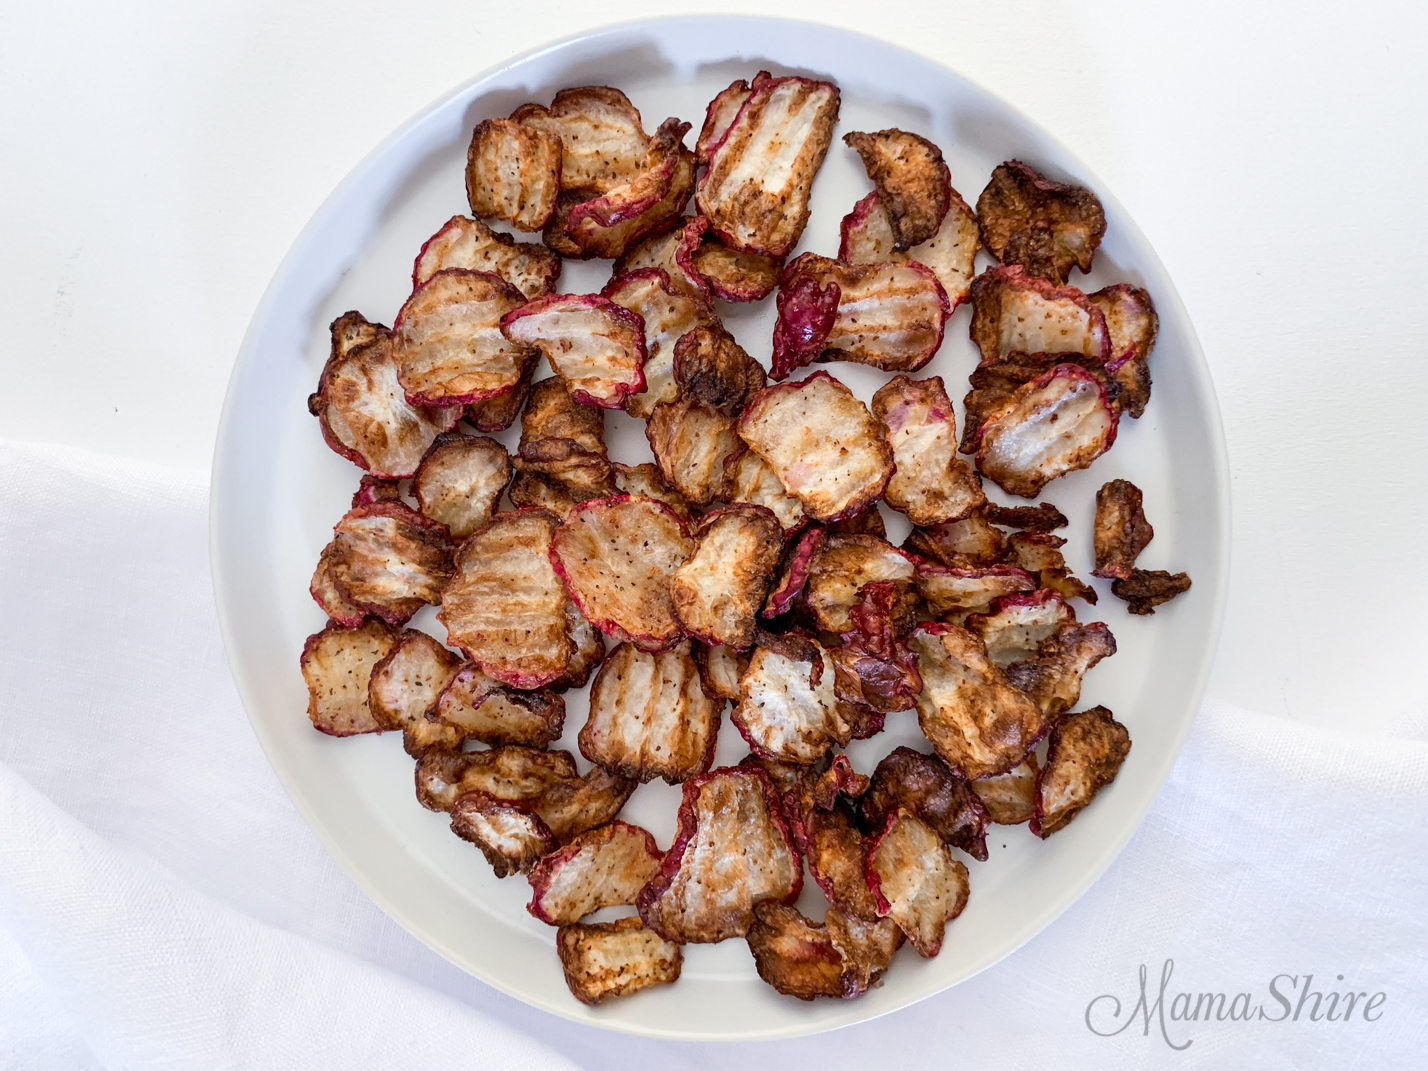 A plate of Low Carb Air Fryer Radish Chips for snacking.